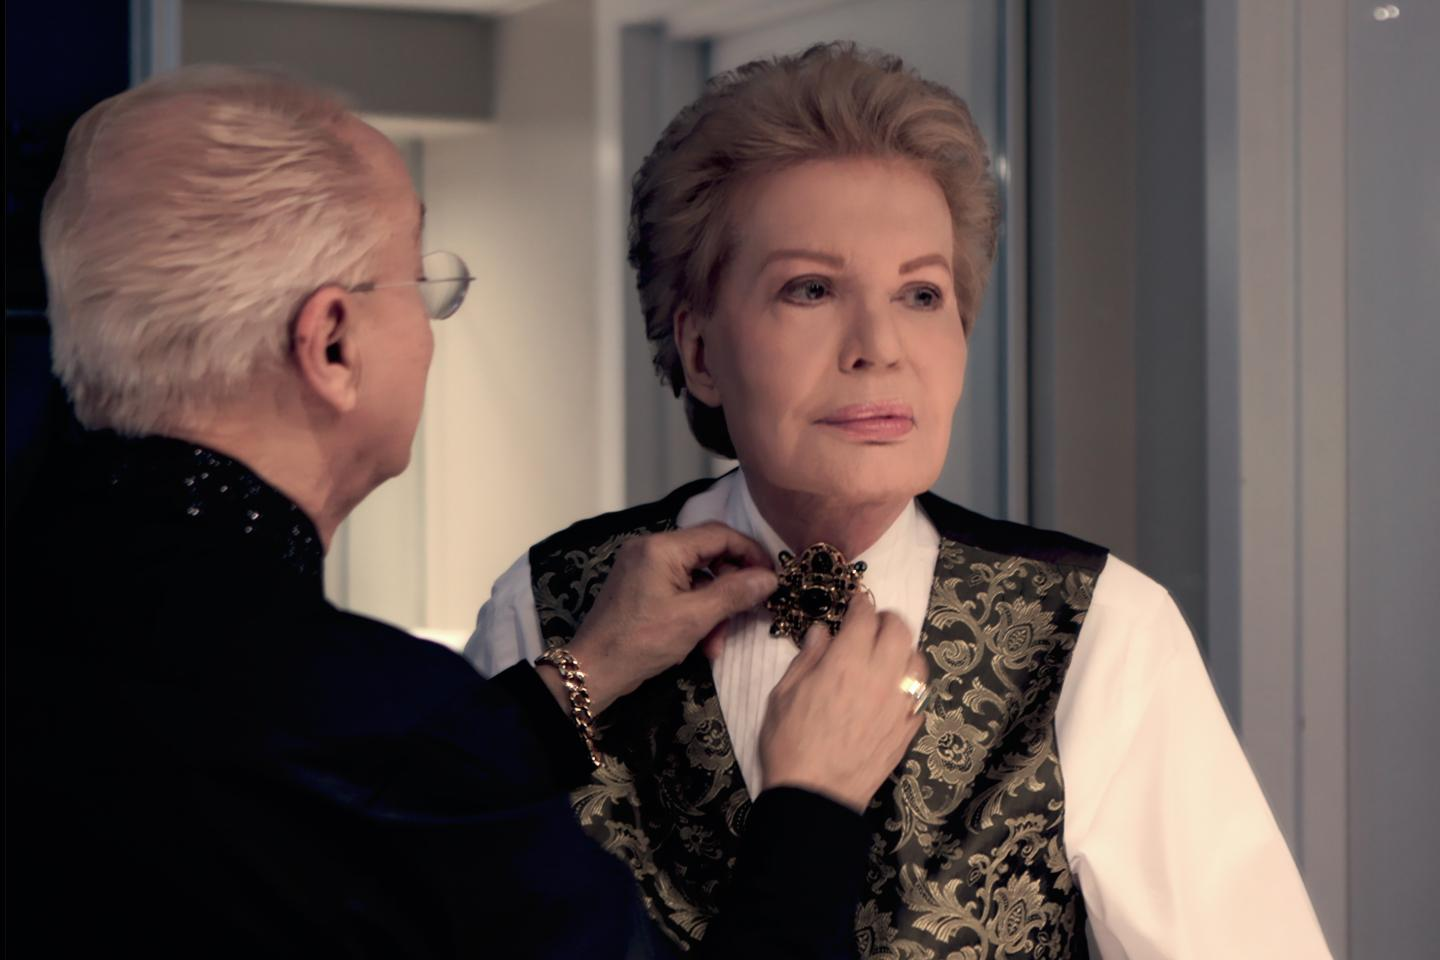 Cristina Costantini, Kareem Tabsch, Mucho Mucho Amor: The Legend of Walter Mercado, 2020, production still. Courtesy: Netflix